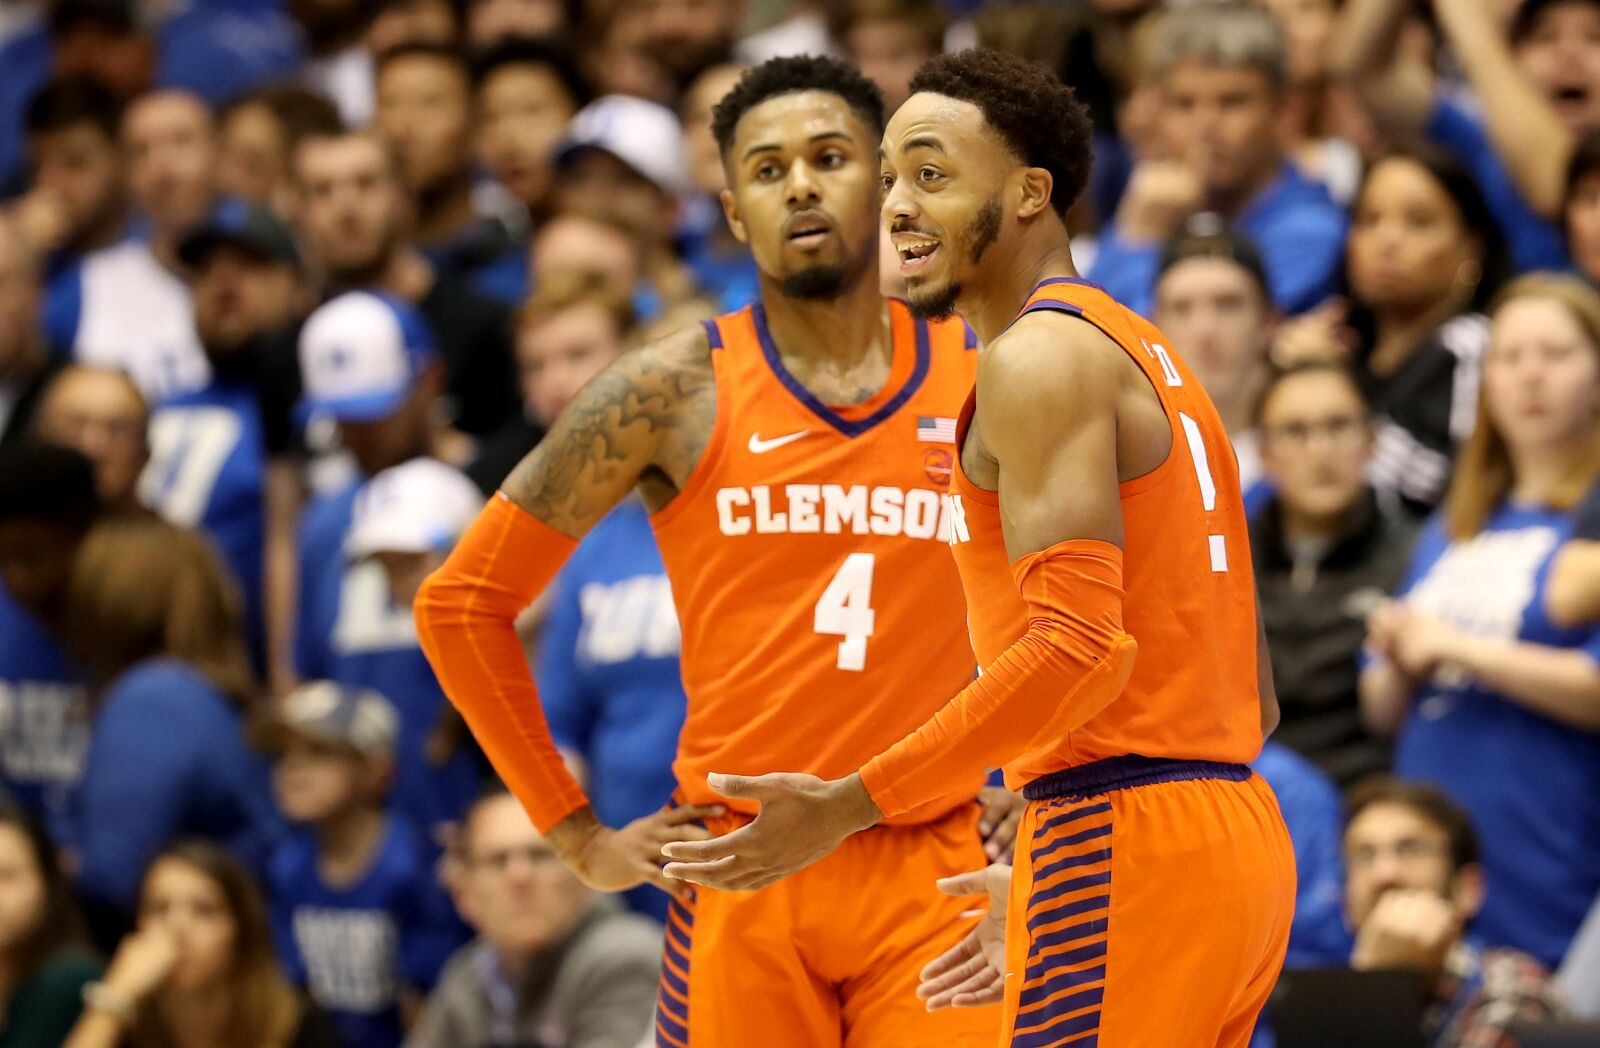 Clemson Basketball: 5 Transfers the Tigers should target